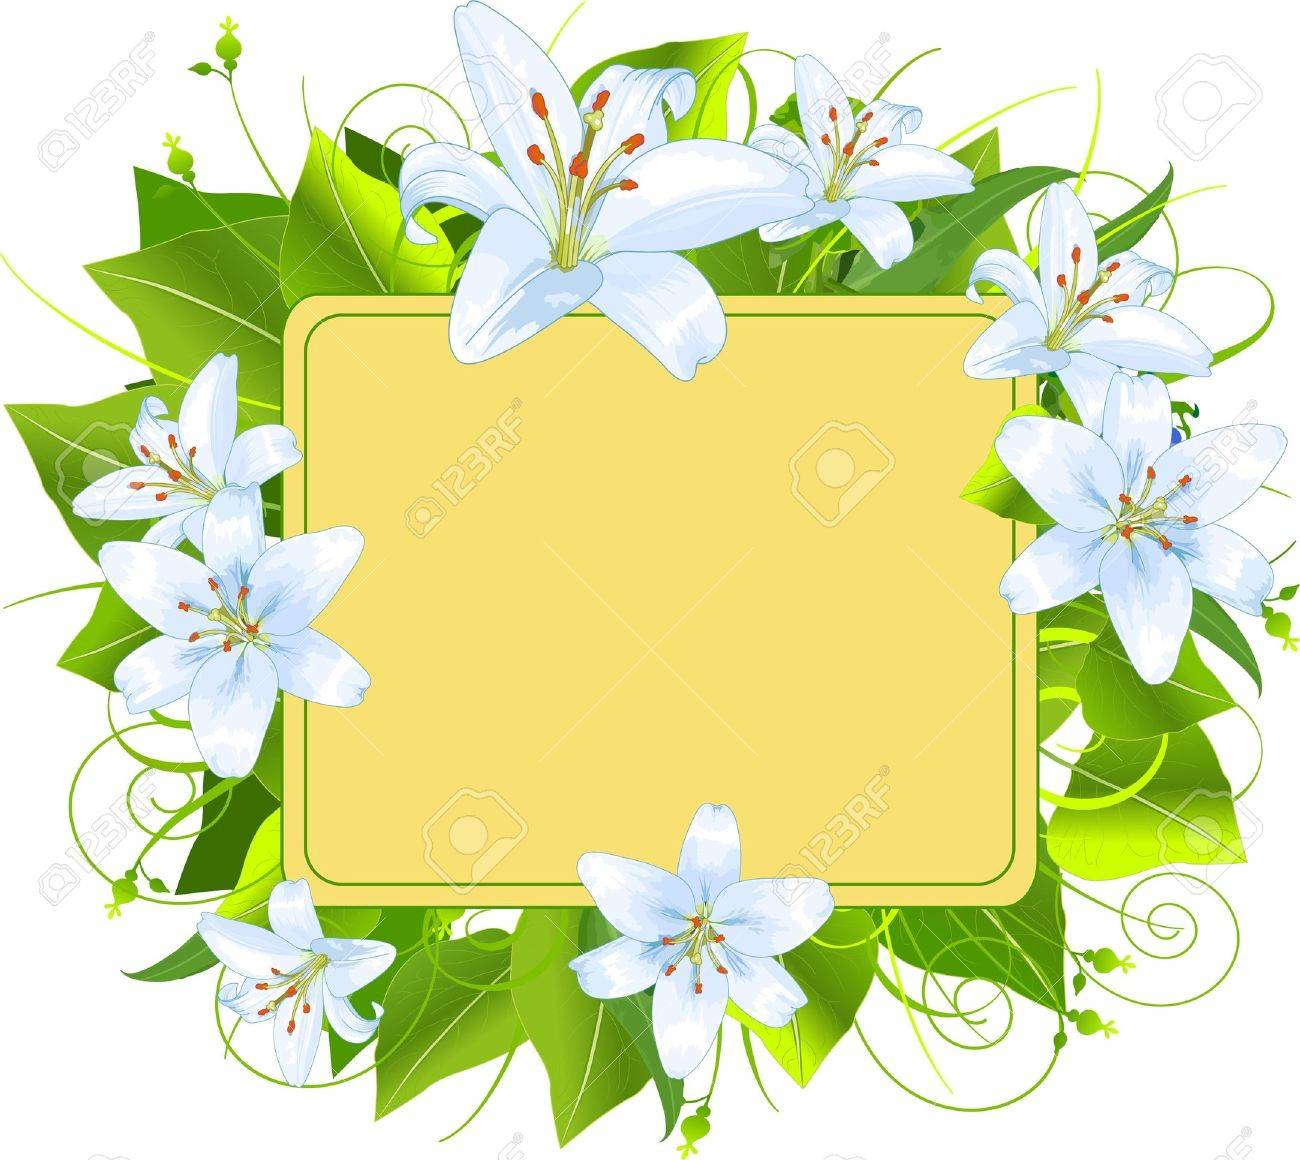 Easter frame, perfect for greeting cards or retail signage Stock Vector - 9220483